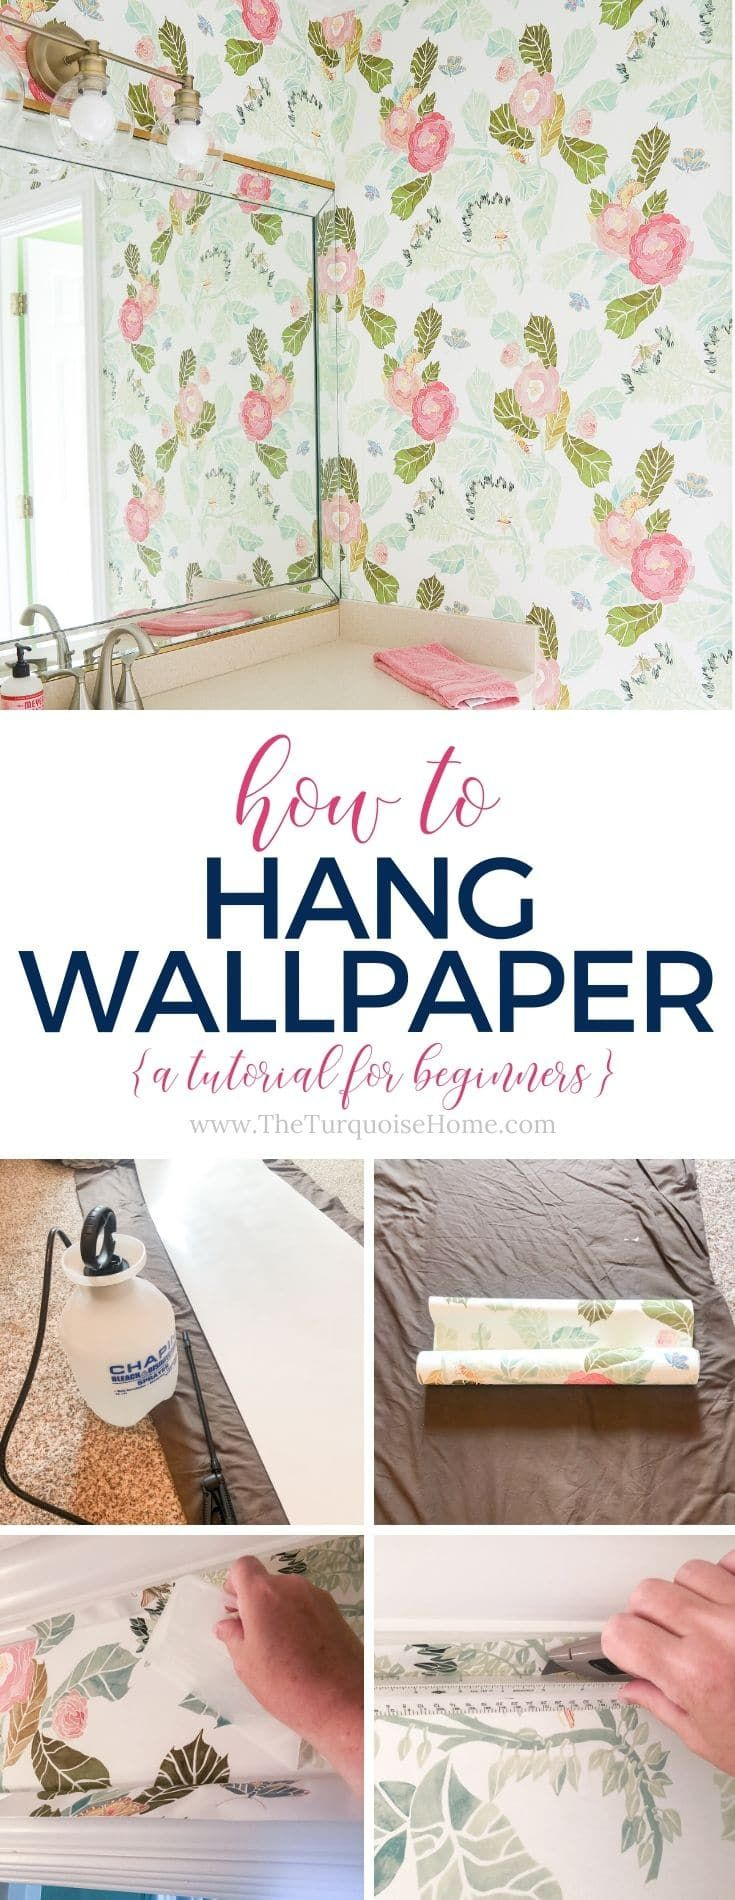 How To Hang Wallpaper Tutorial For Beginners How To Hang Wallpaper Work Diy Wallpaper Project